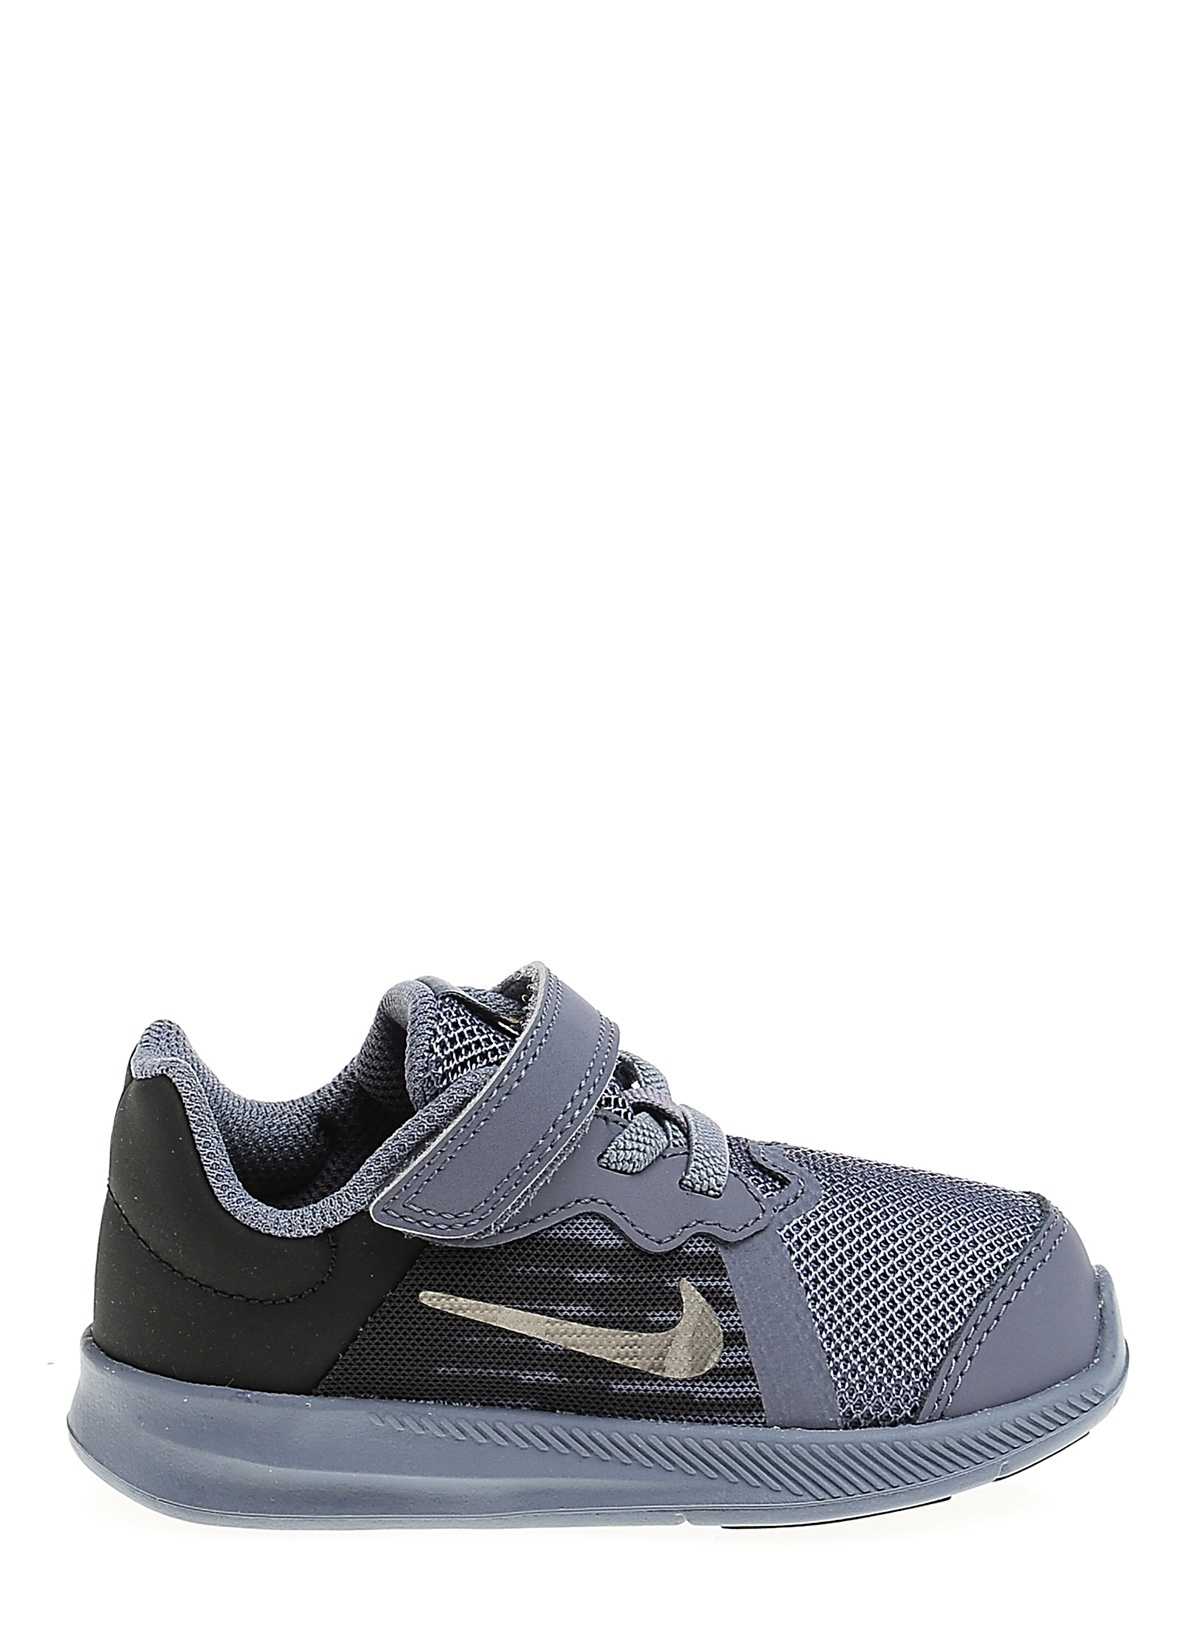 TD Toddler Shoe # 922856-009 Boys/' Nike Downshifter 8